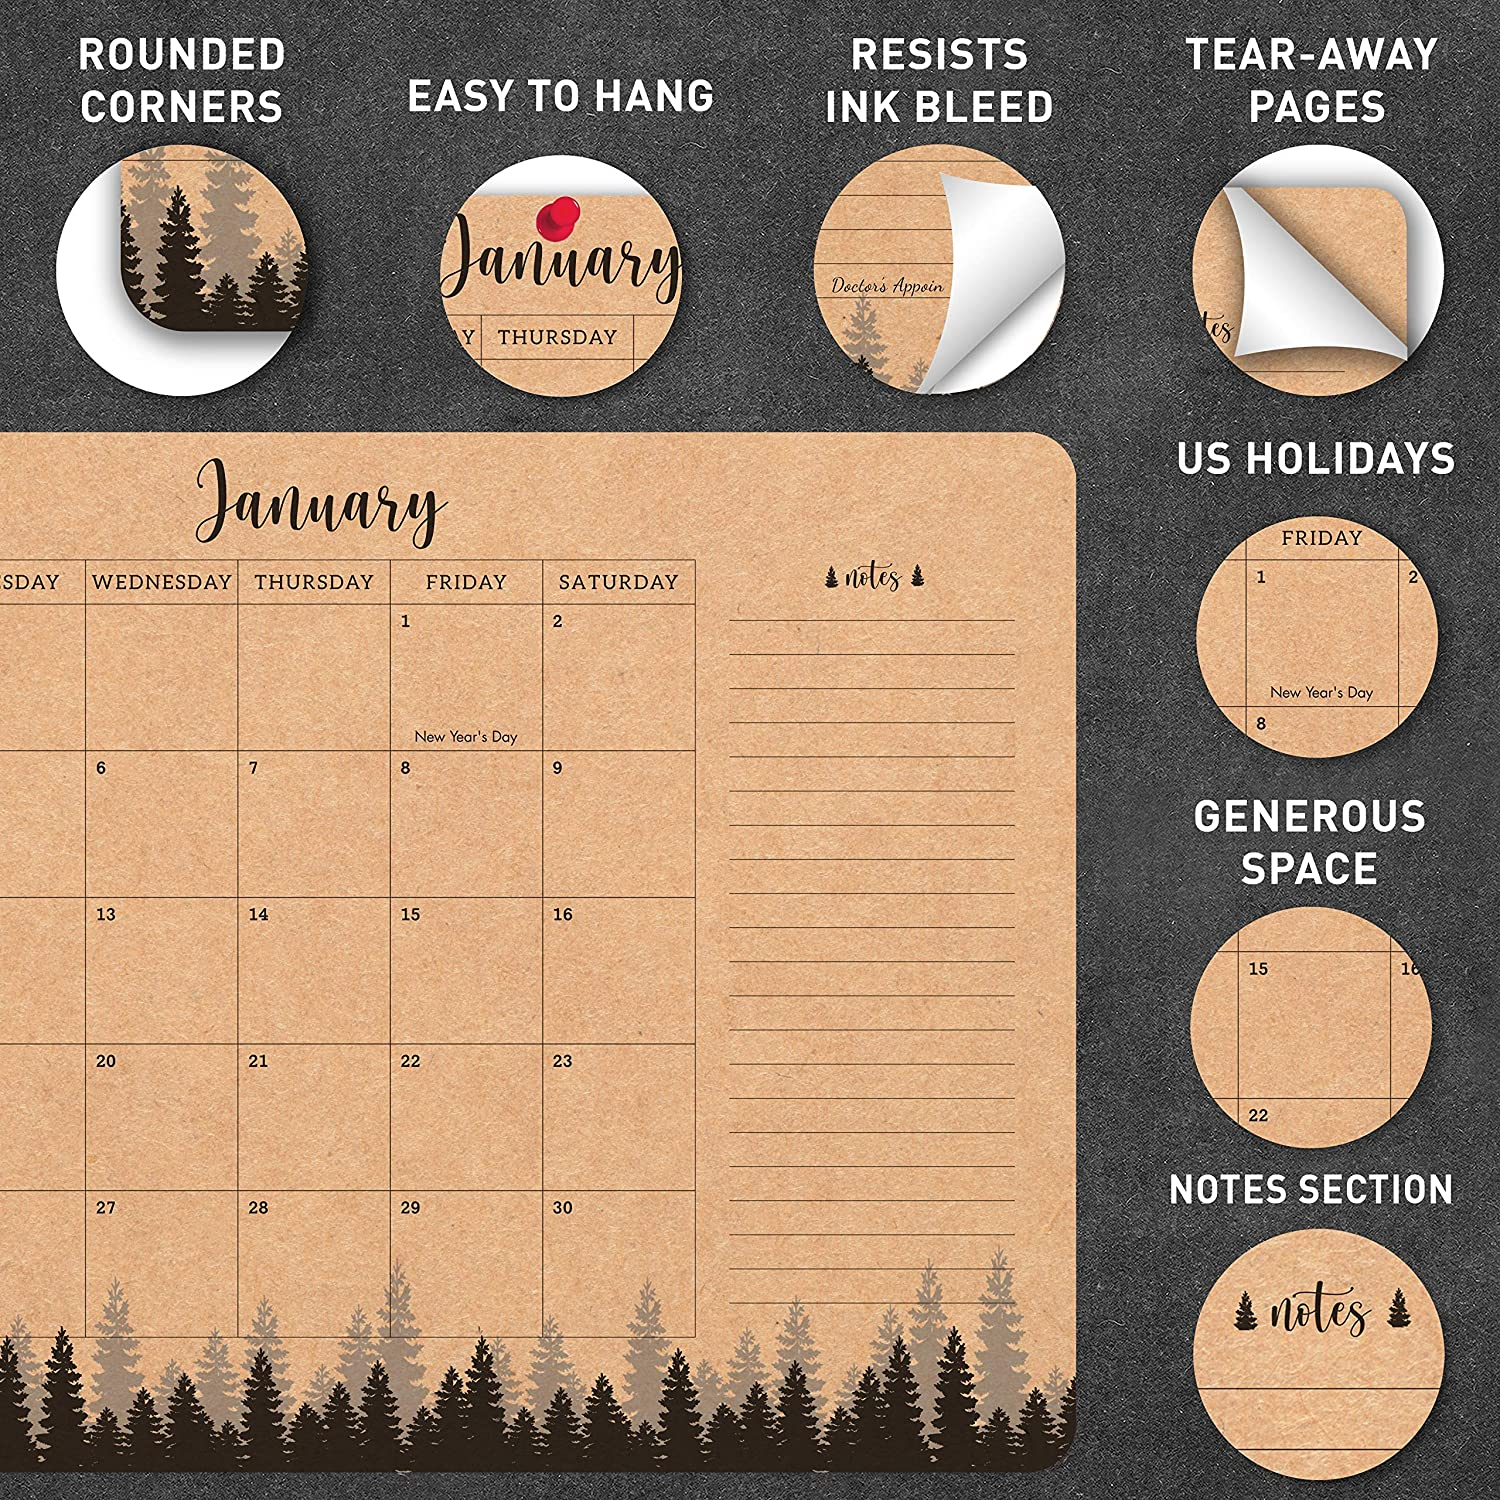 Jan 2021 - Dec 2021 Family,Business Home MUDRIT 2021 Wall//Desk Yearly Kraft Calendar Brown Rustic Large Pages 12 X 17 Monthly Daily Planner Big Blotter Desktop//Hanging Pad School Academic Planning Office